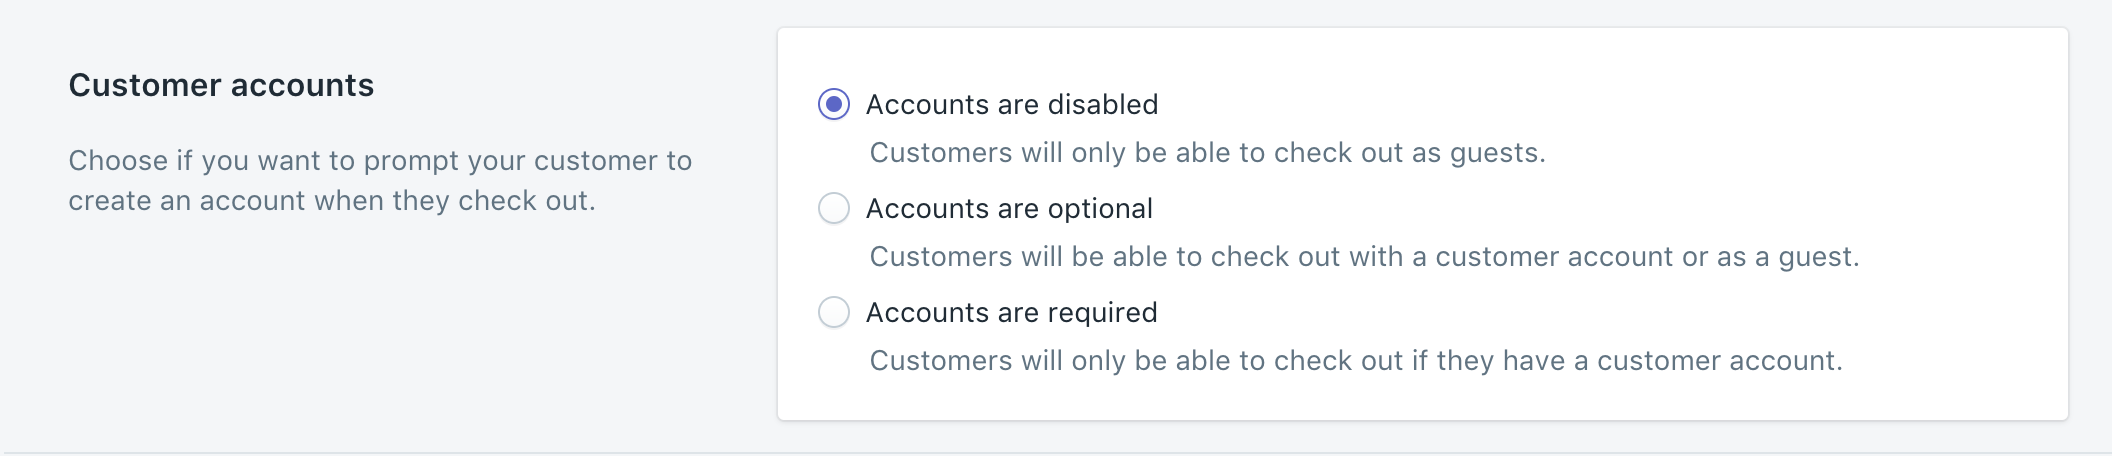 Checkout settings for customer accounts